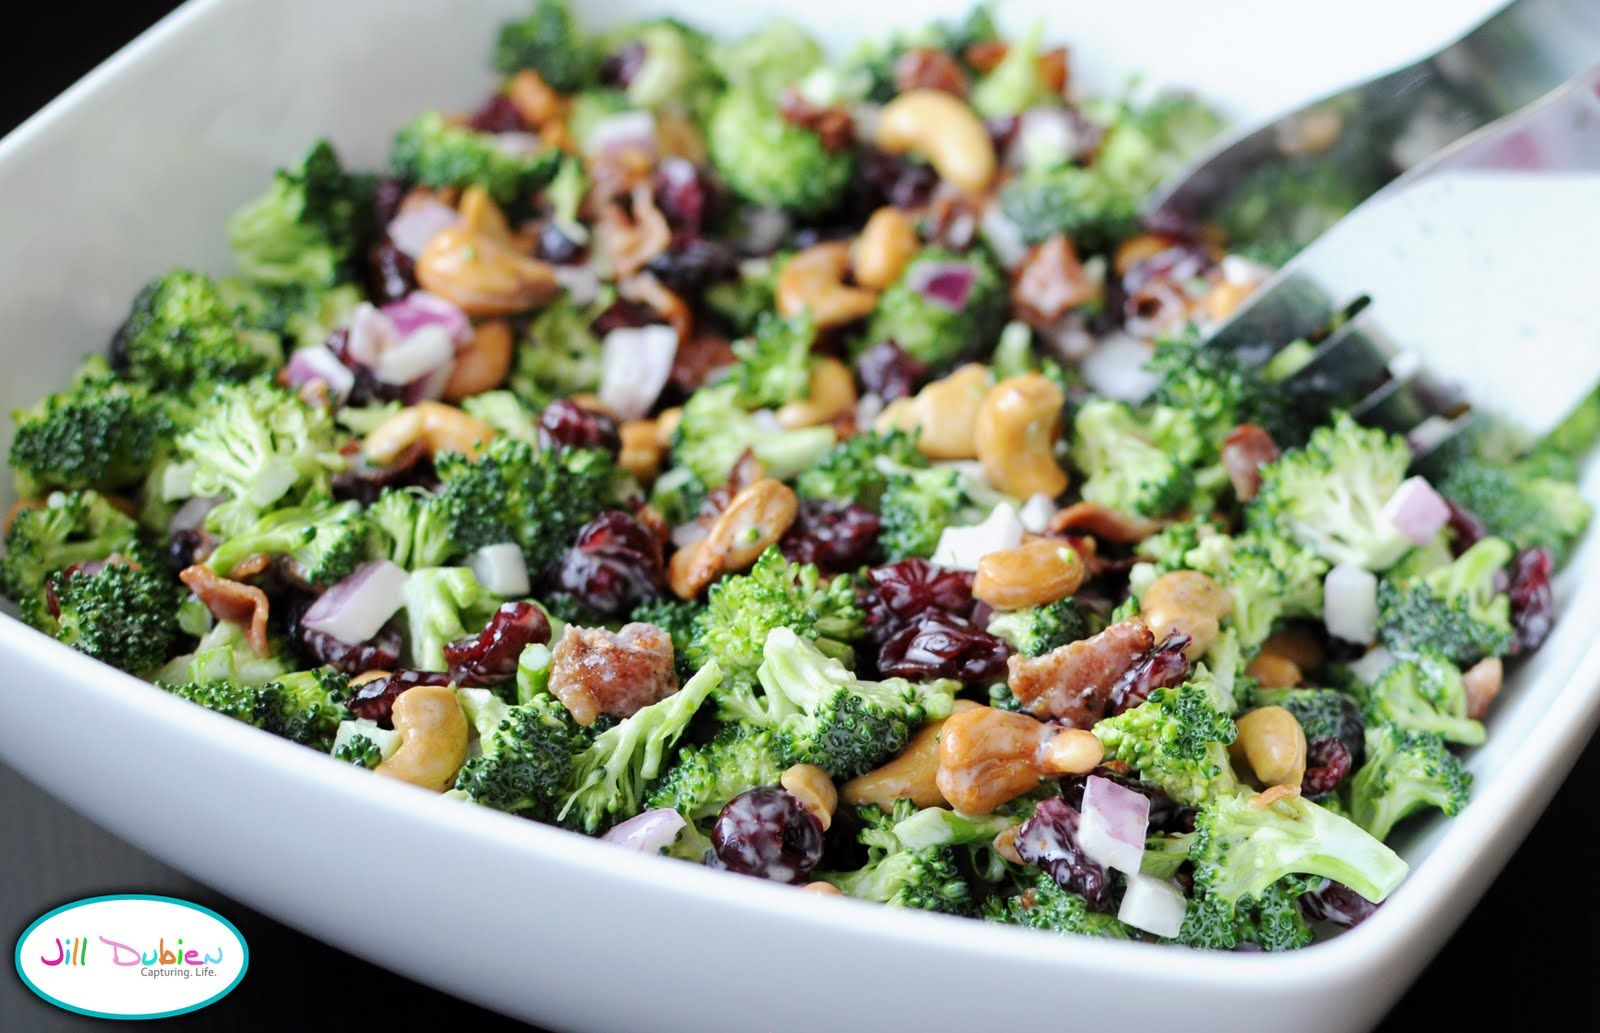 salad broccoli salad broccoli salad a fresh broccoli salad for this ...